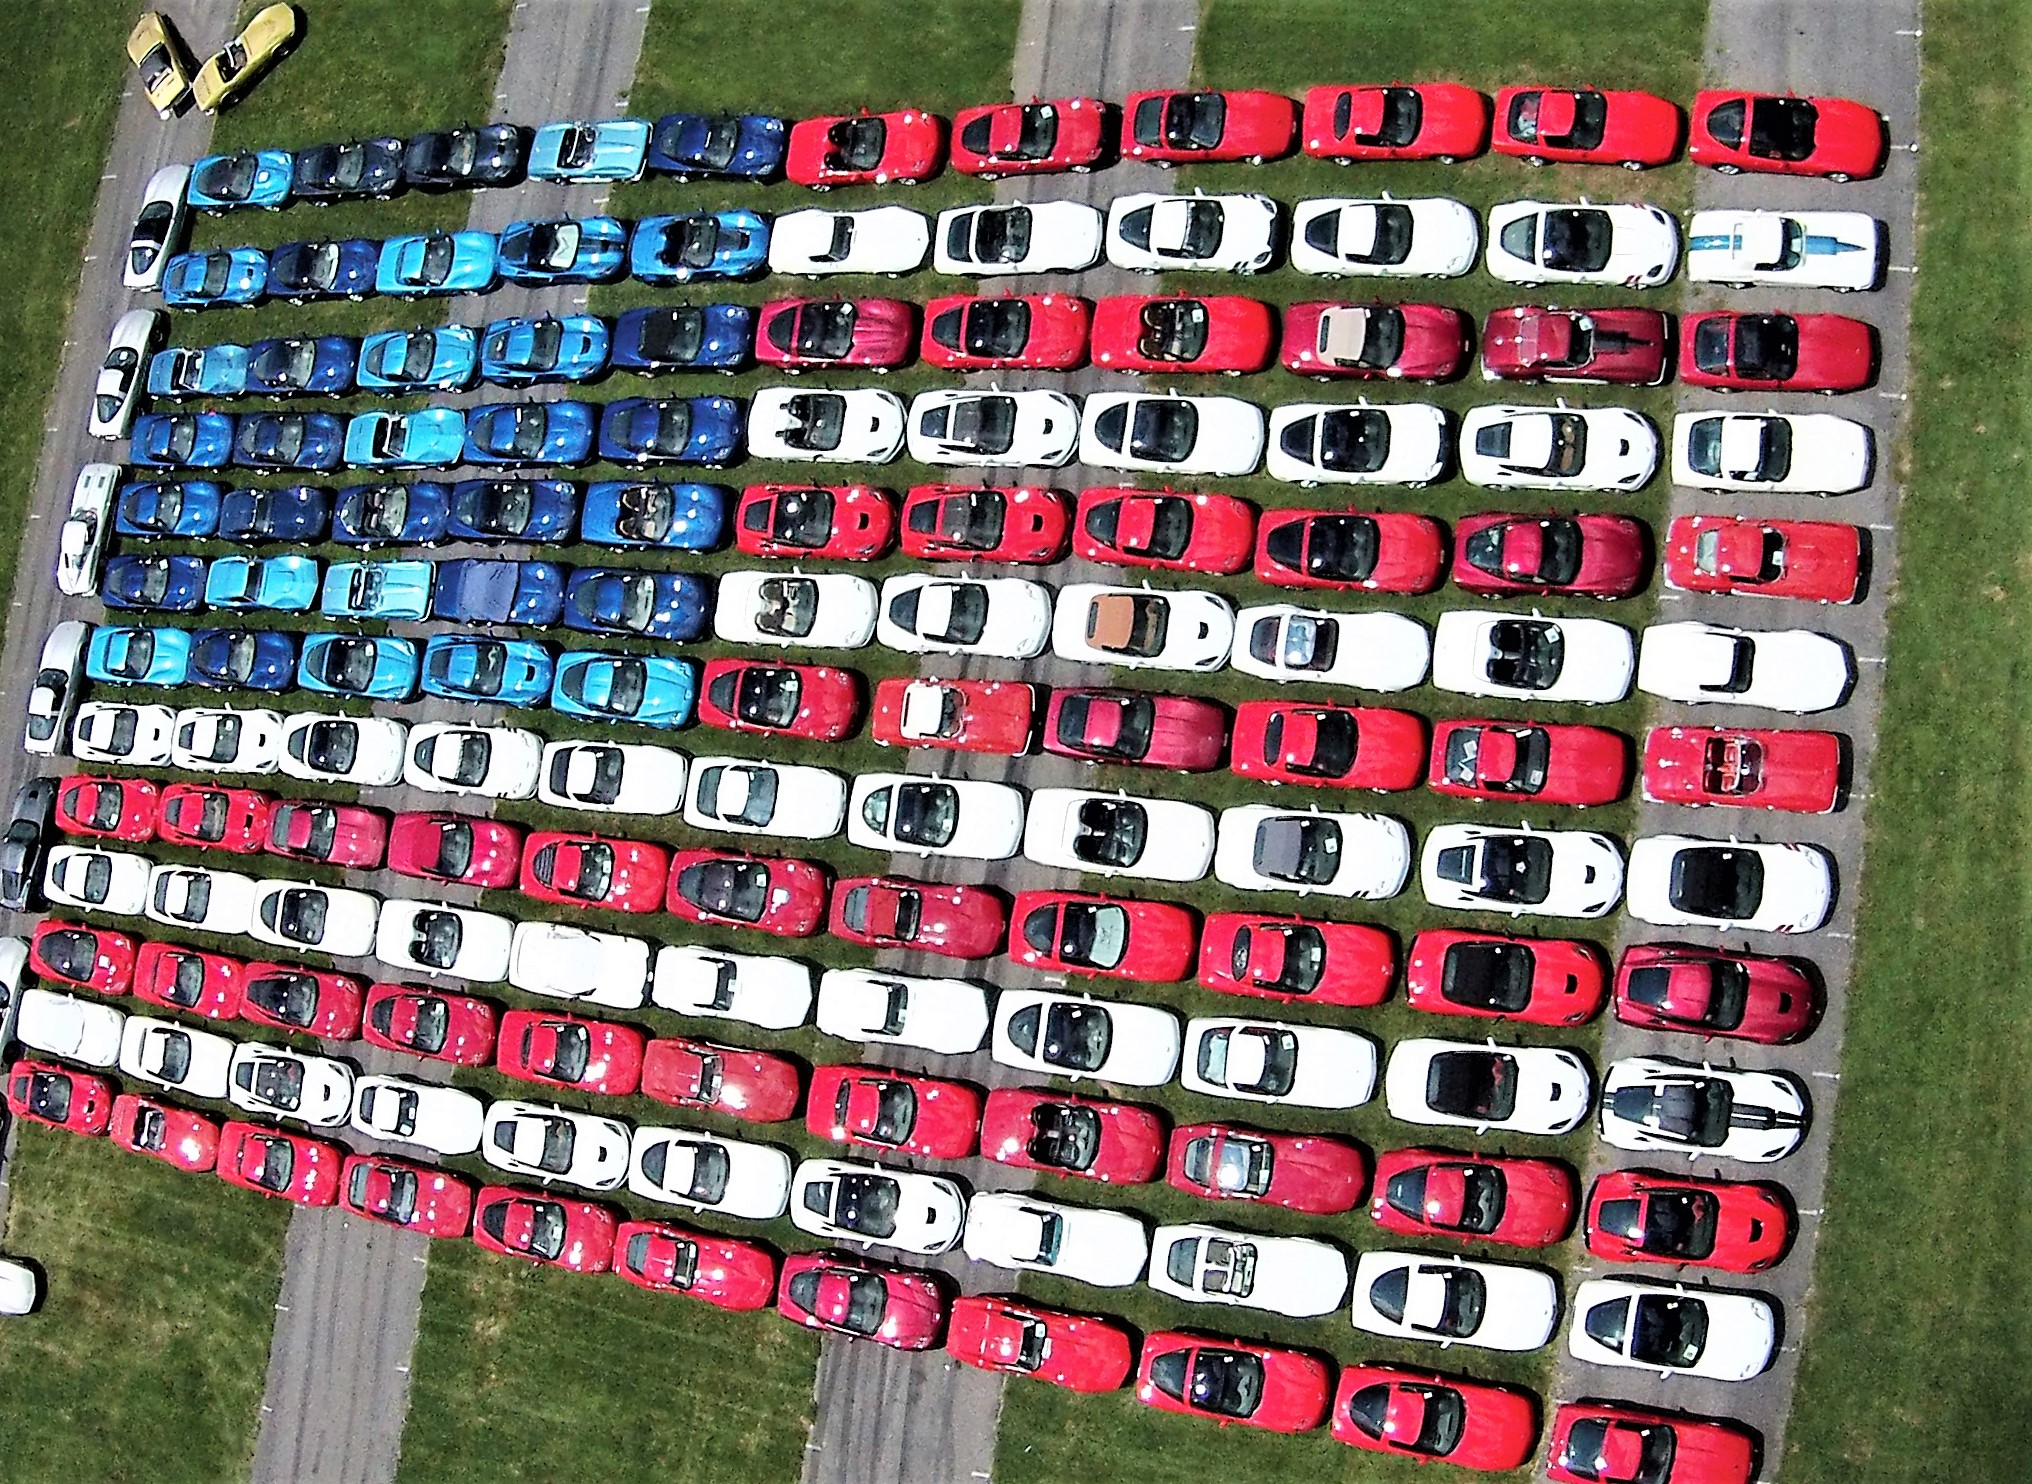 The iconic American flag made of Corvettes